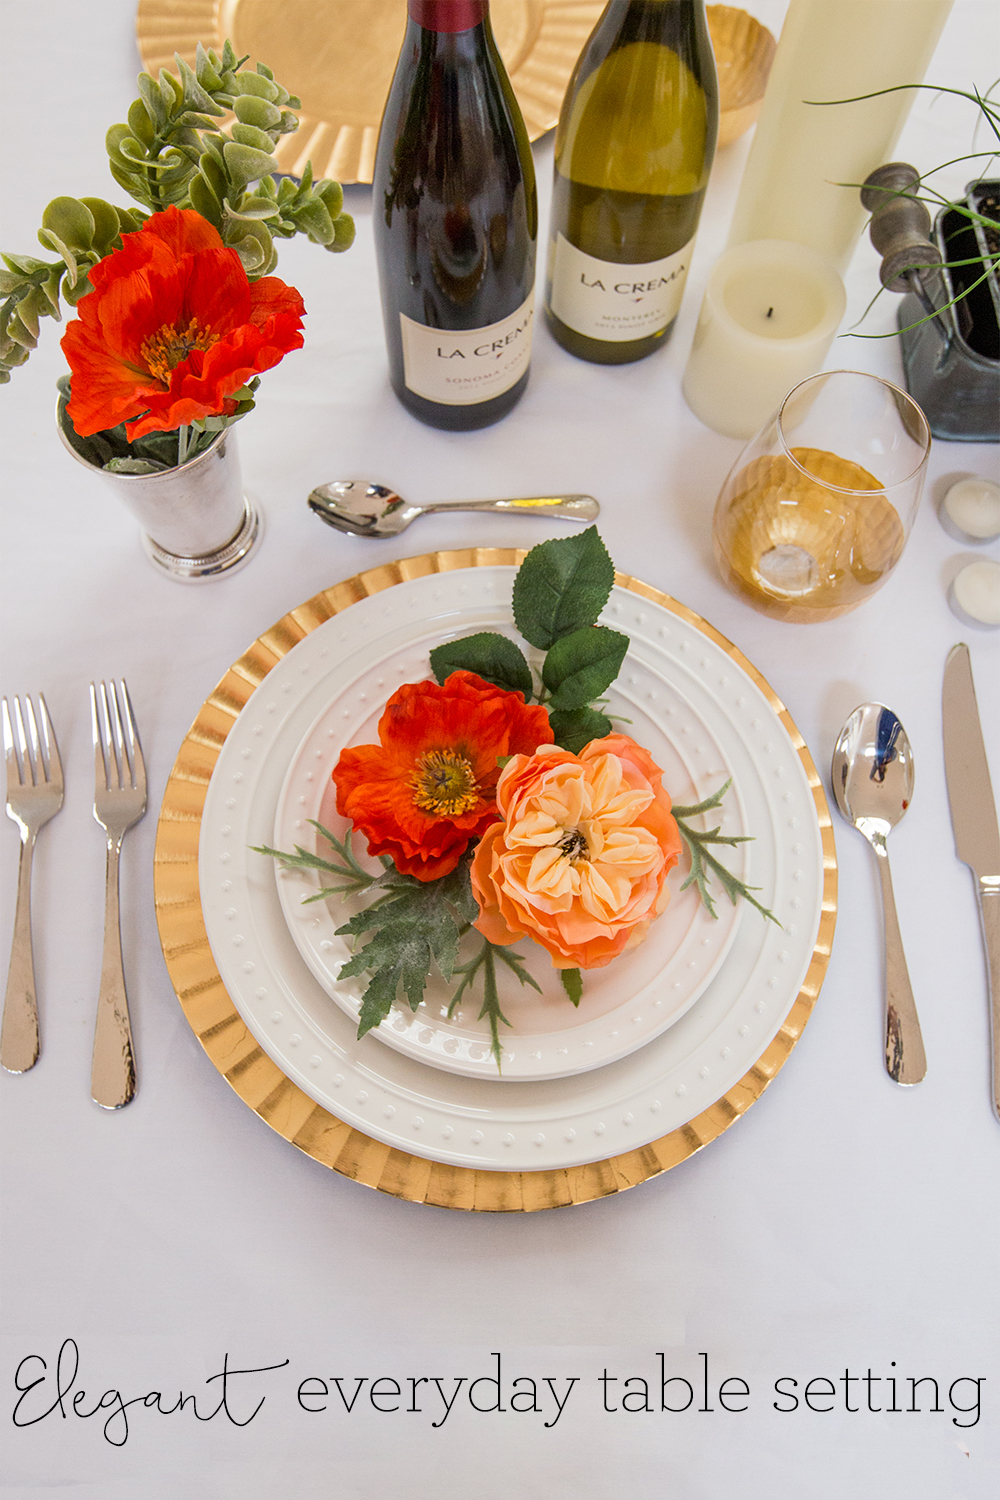 Elegant Everyday Table Setting | Freckled Italian : everyday table settings - pezcame.com